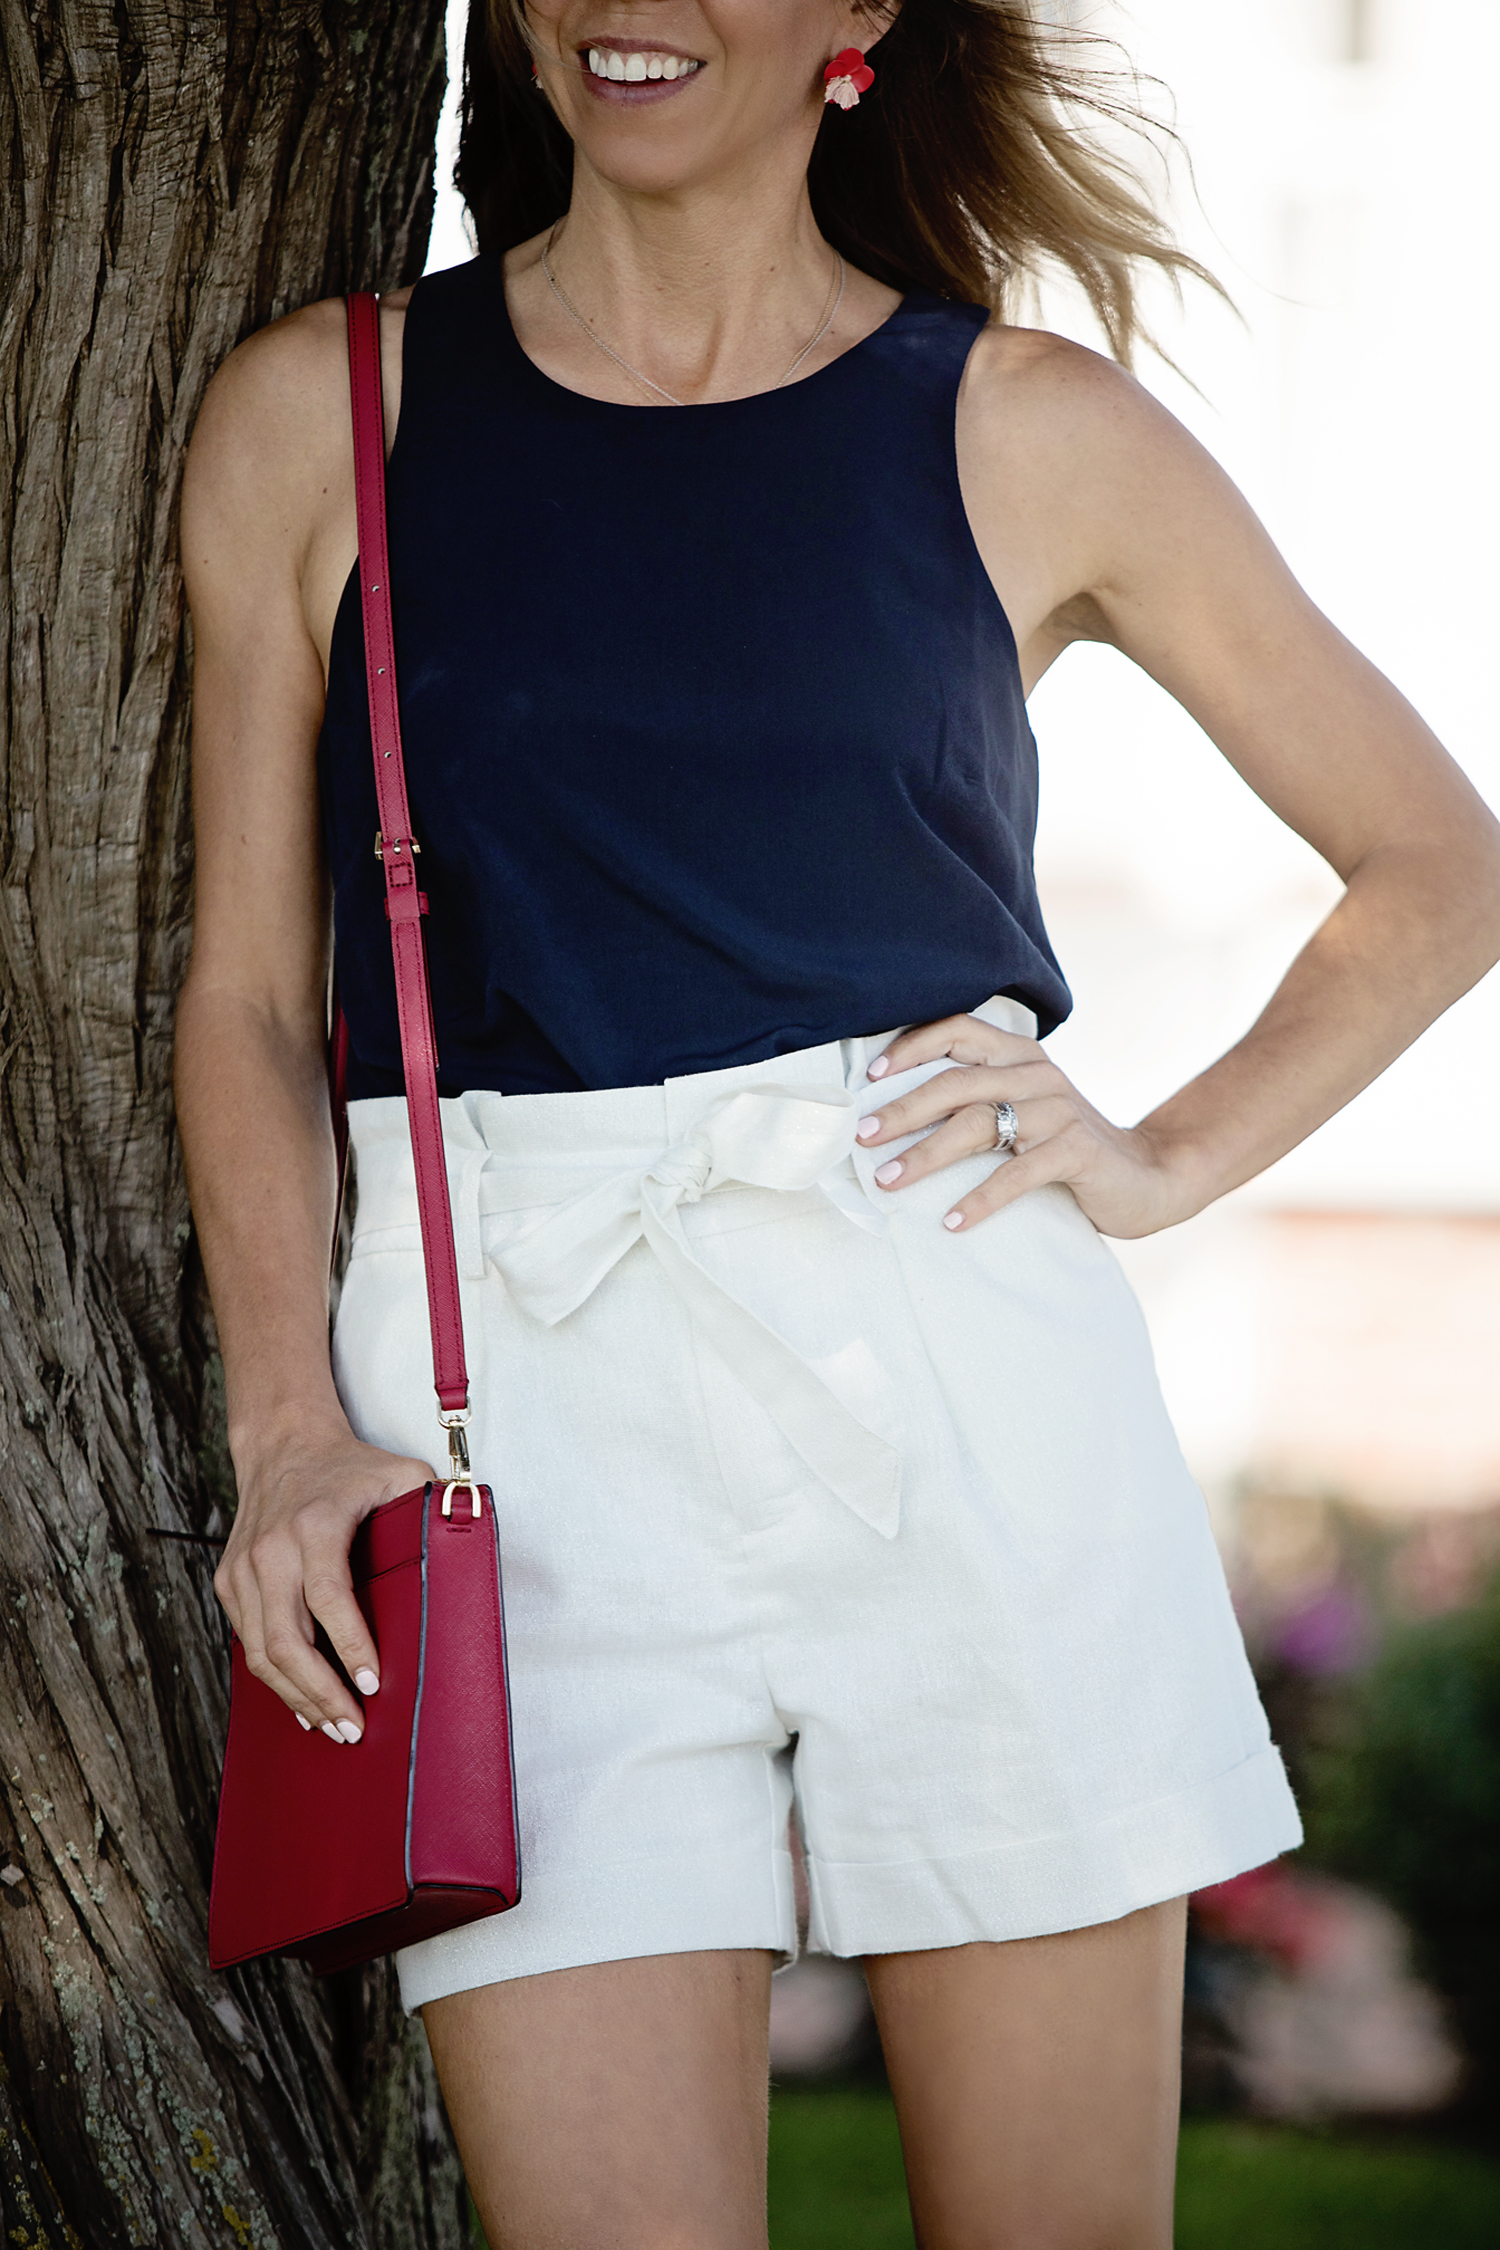 The Motherchic wearing target shorts and banana republic tank